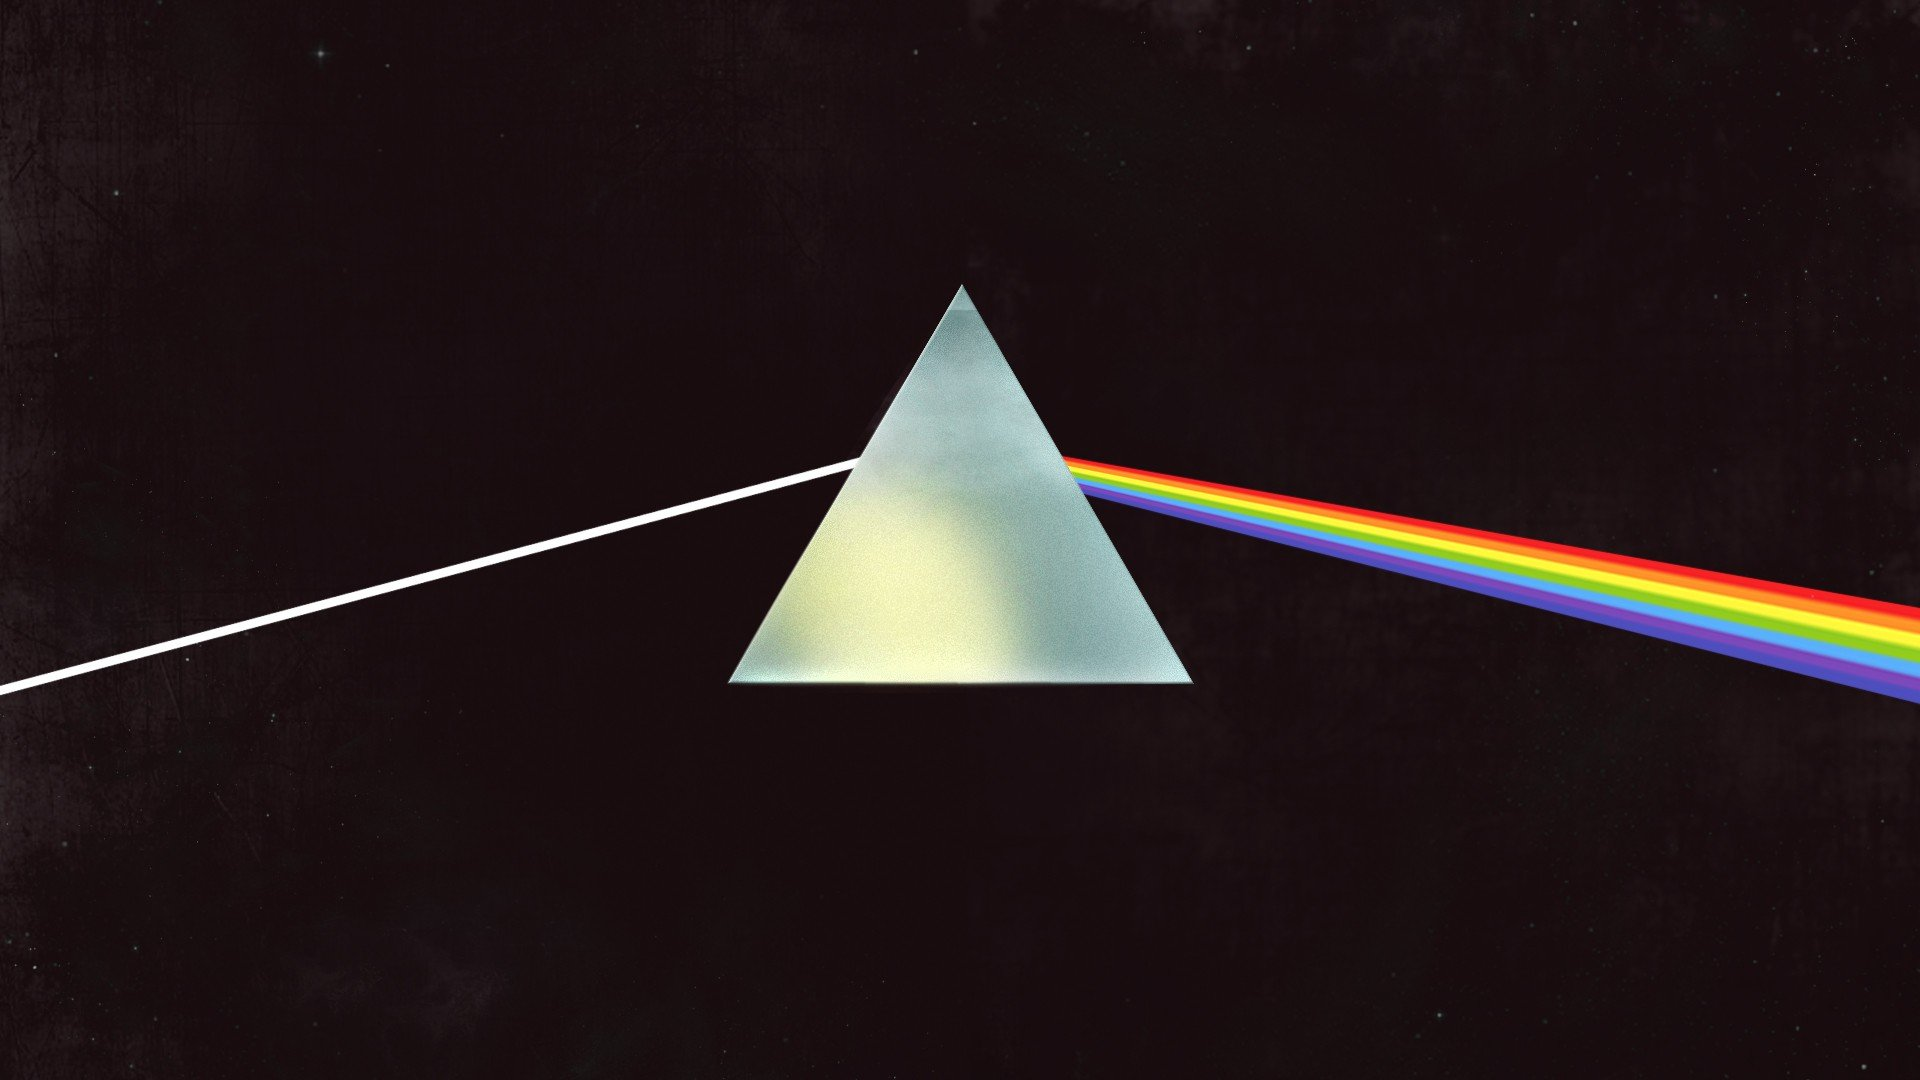 Pink Floyd Dark Side Of The Moon Music Hd Wallpapers Desktop